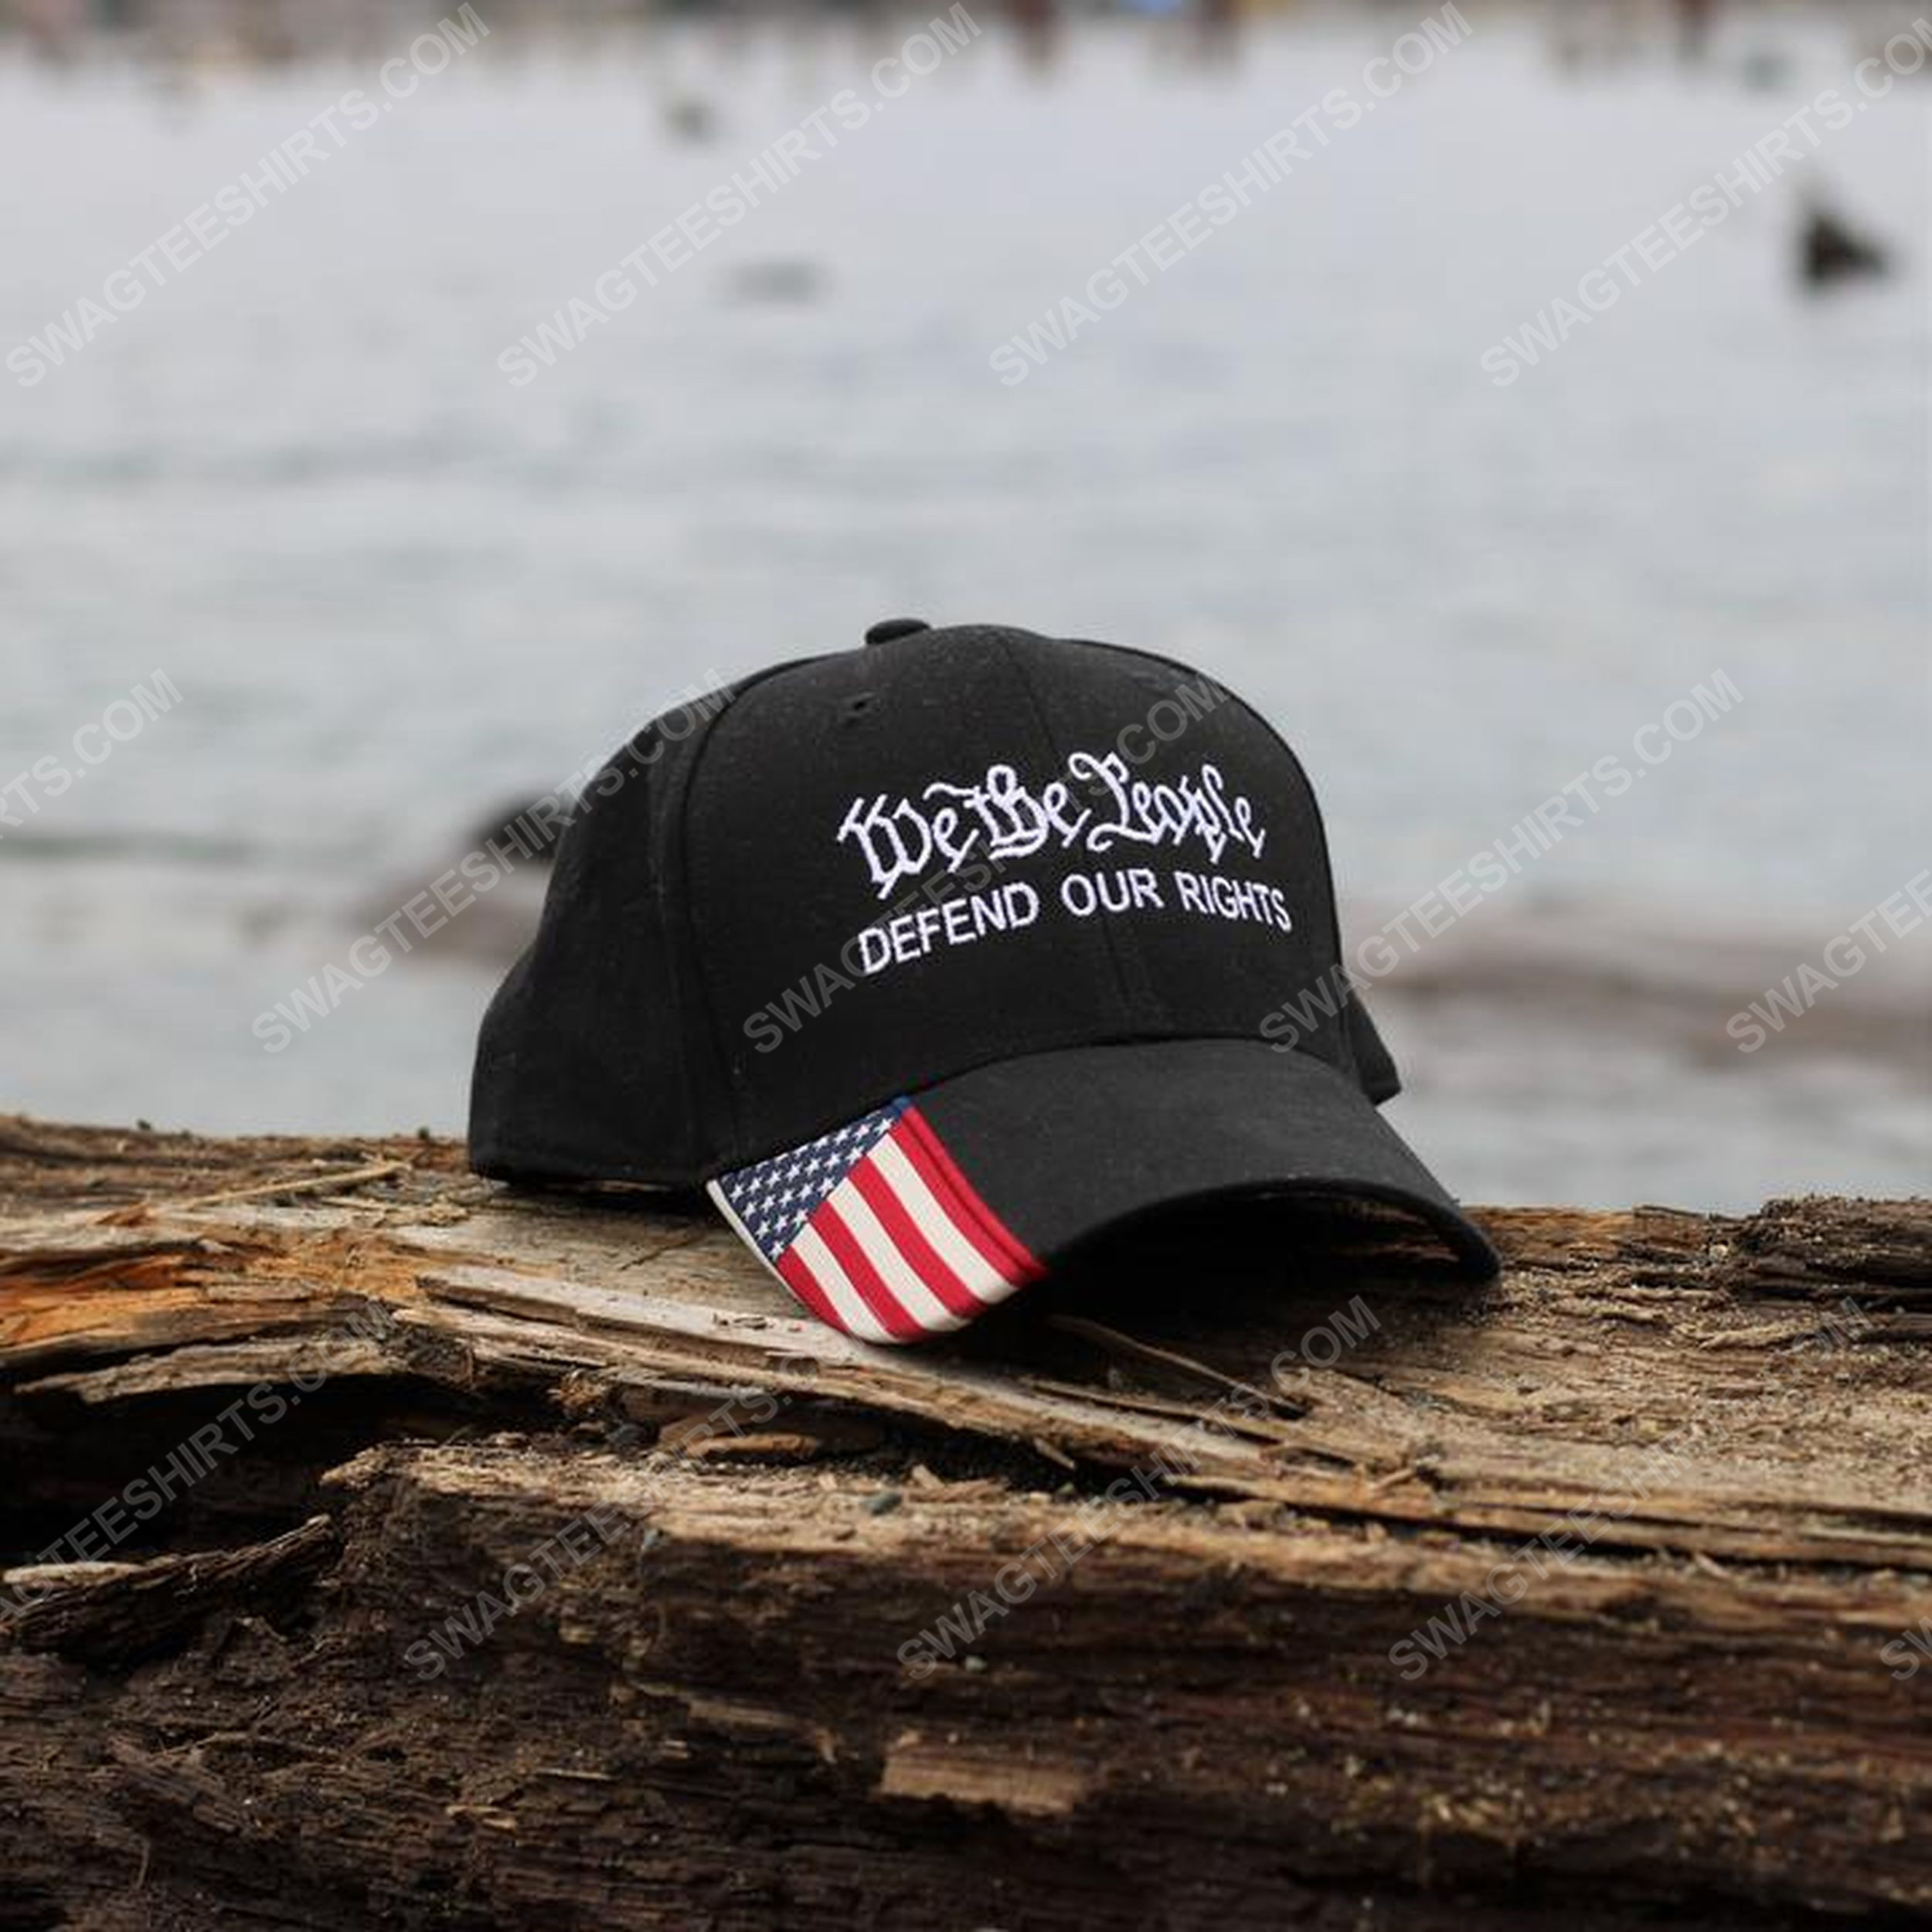 We the people defend our rights american flag full print classic hat 1 - Copy